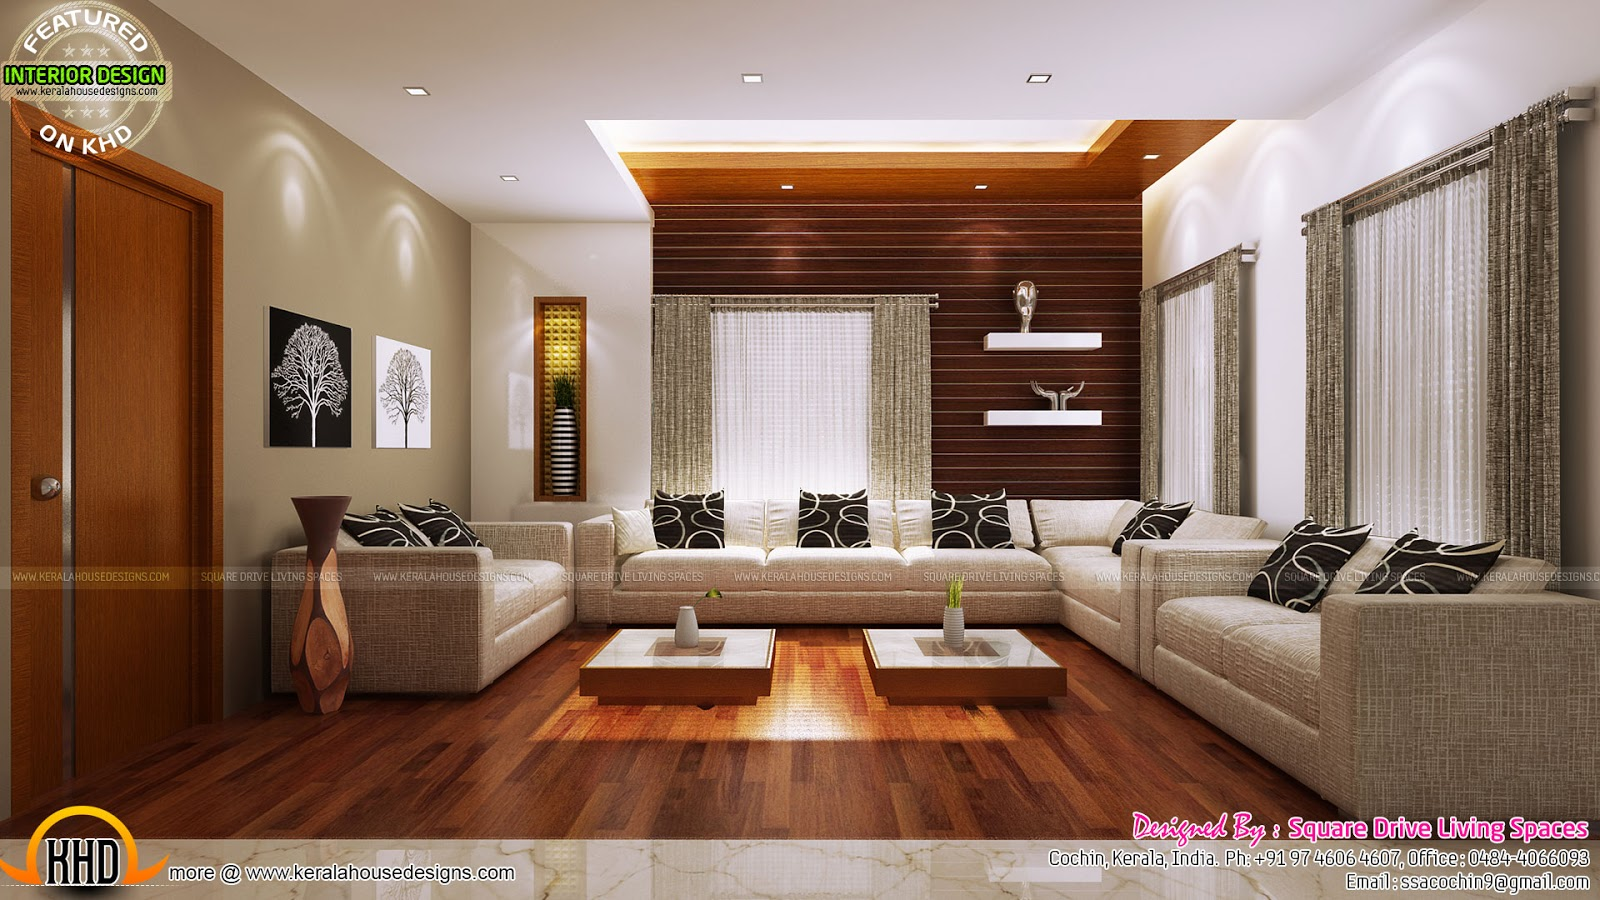 Excellent kerala interior design kerala home design and for Interior design for living room and bedroom